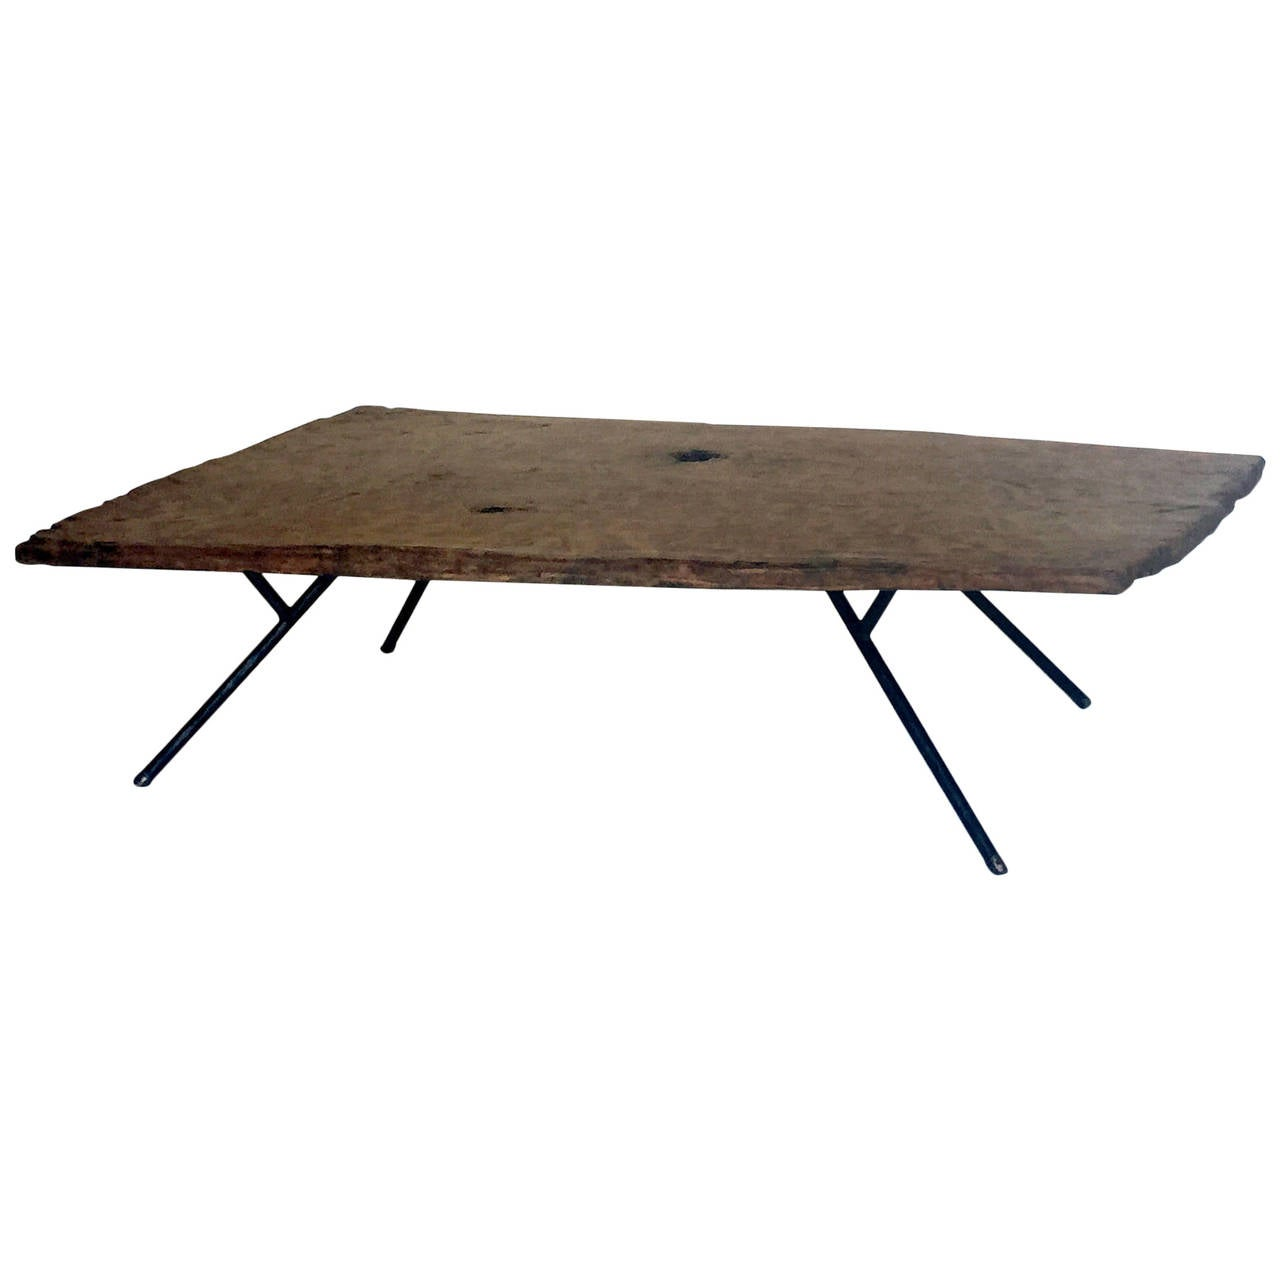 Plank Modern Coffee Table by Dos Gallos Studio